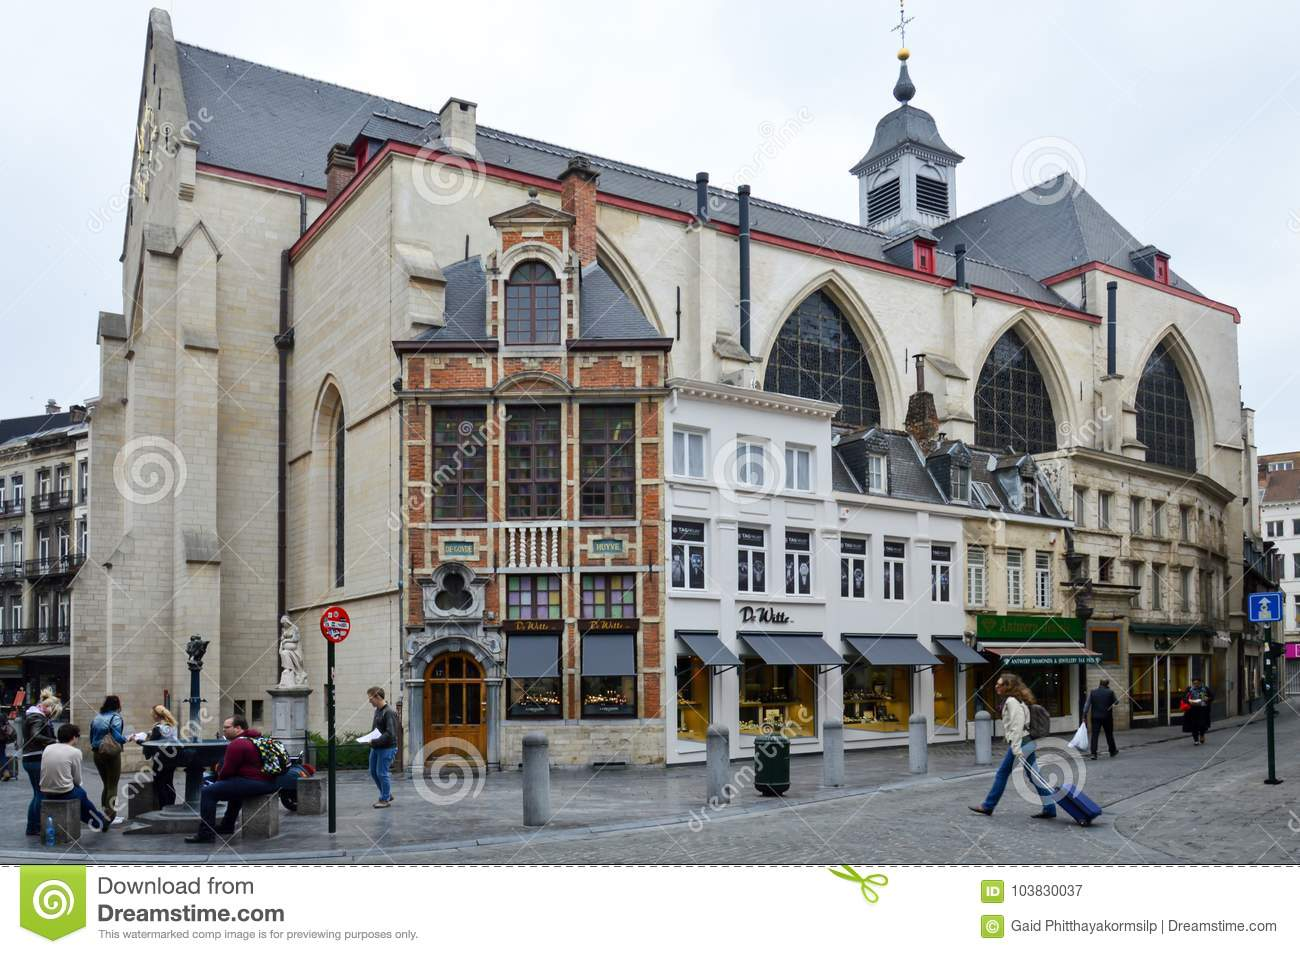 The Église St-Nicolas or Saint Nicholas Church located behind the Bourse in Brussels, Belgium